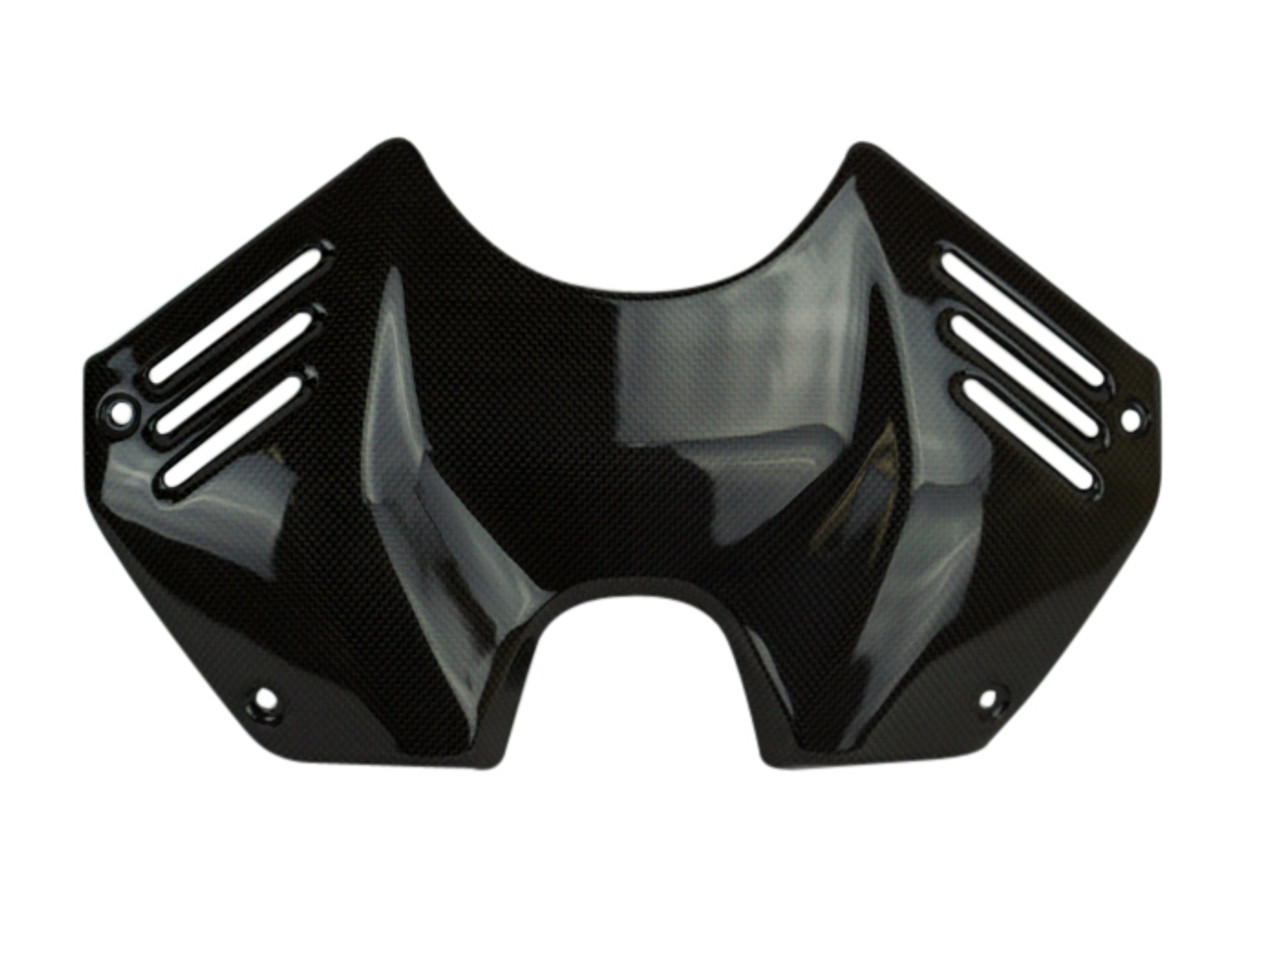 Tank Cover SBK Style in Glossy Twill weave Carbon Fiber for Ducati Panigale V4